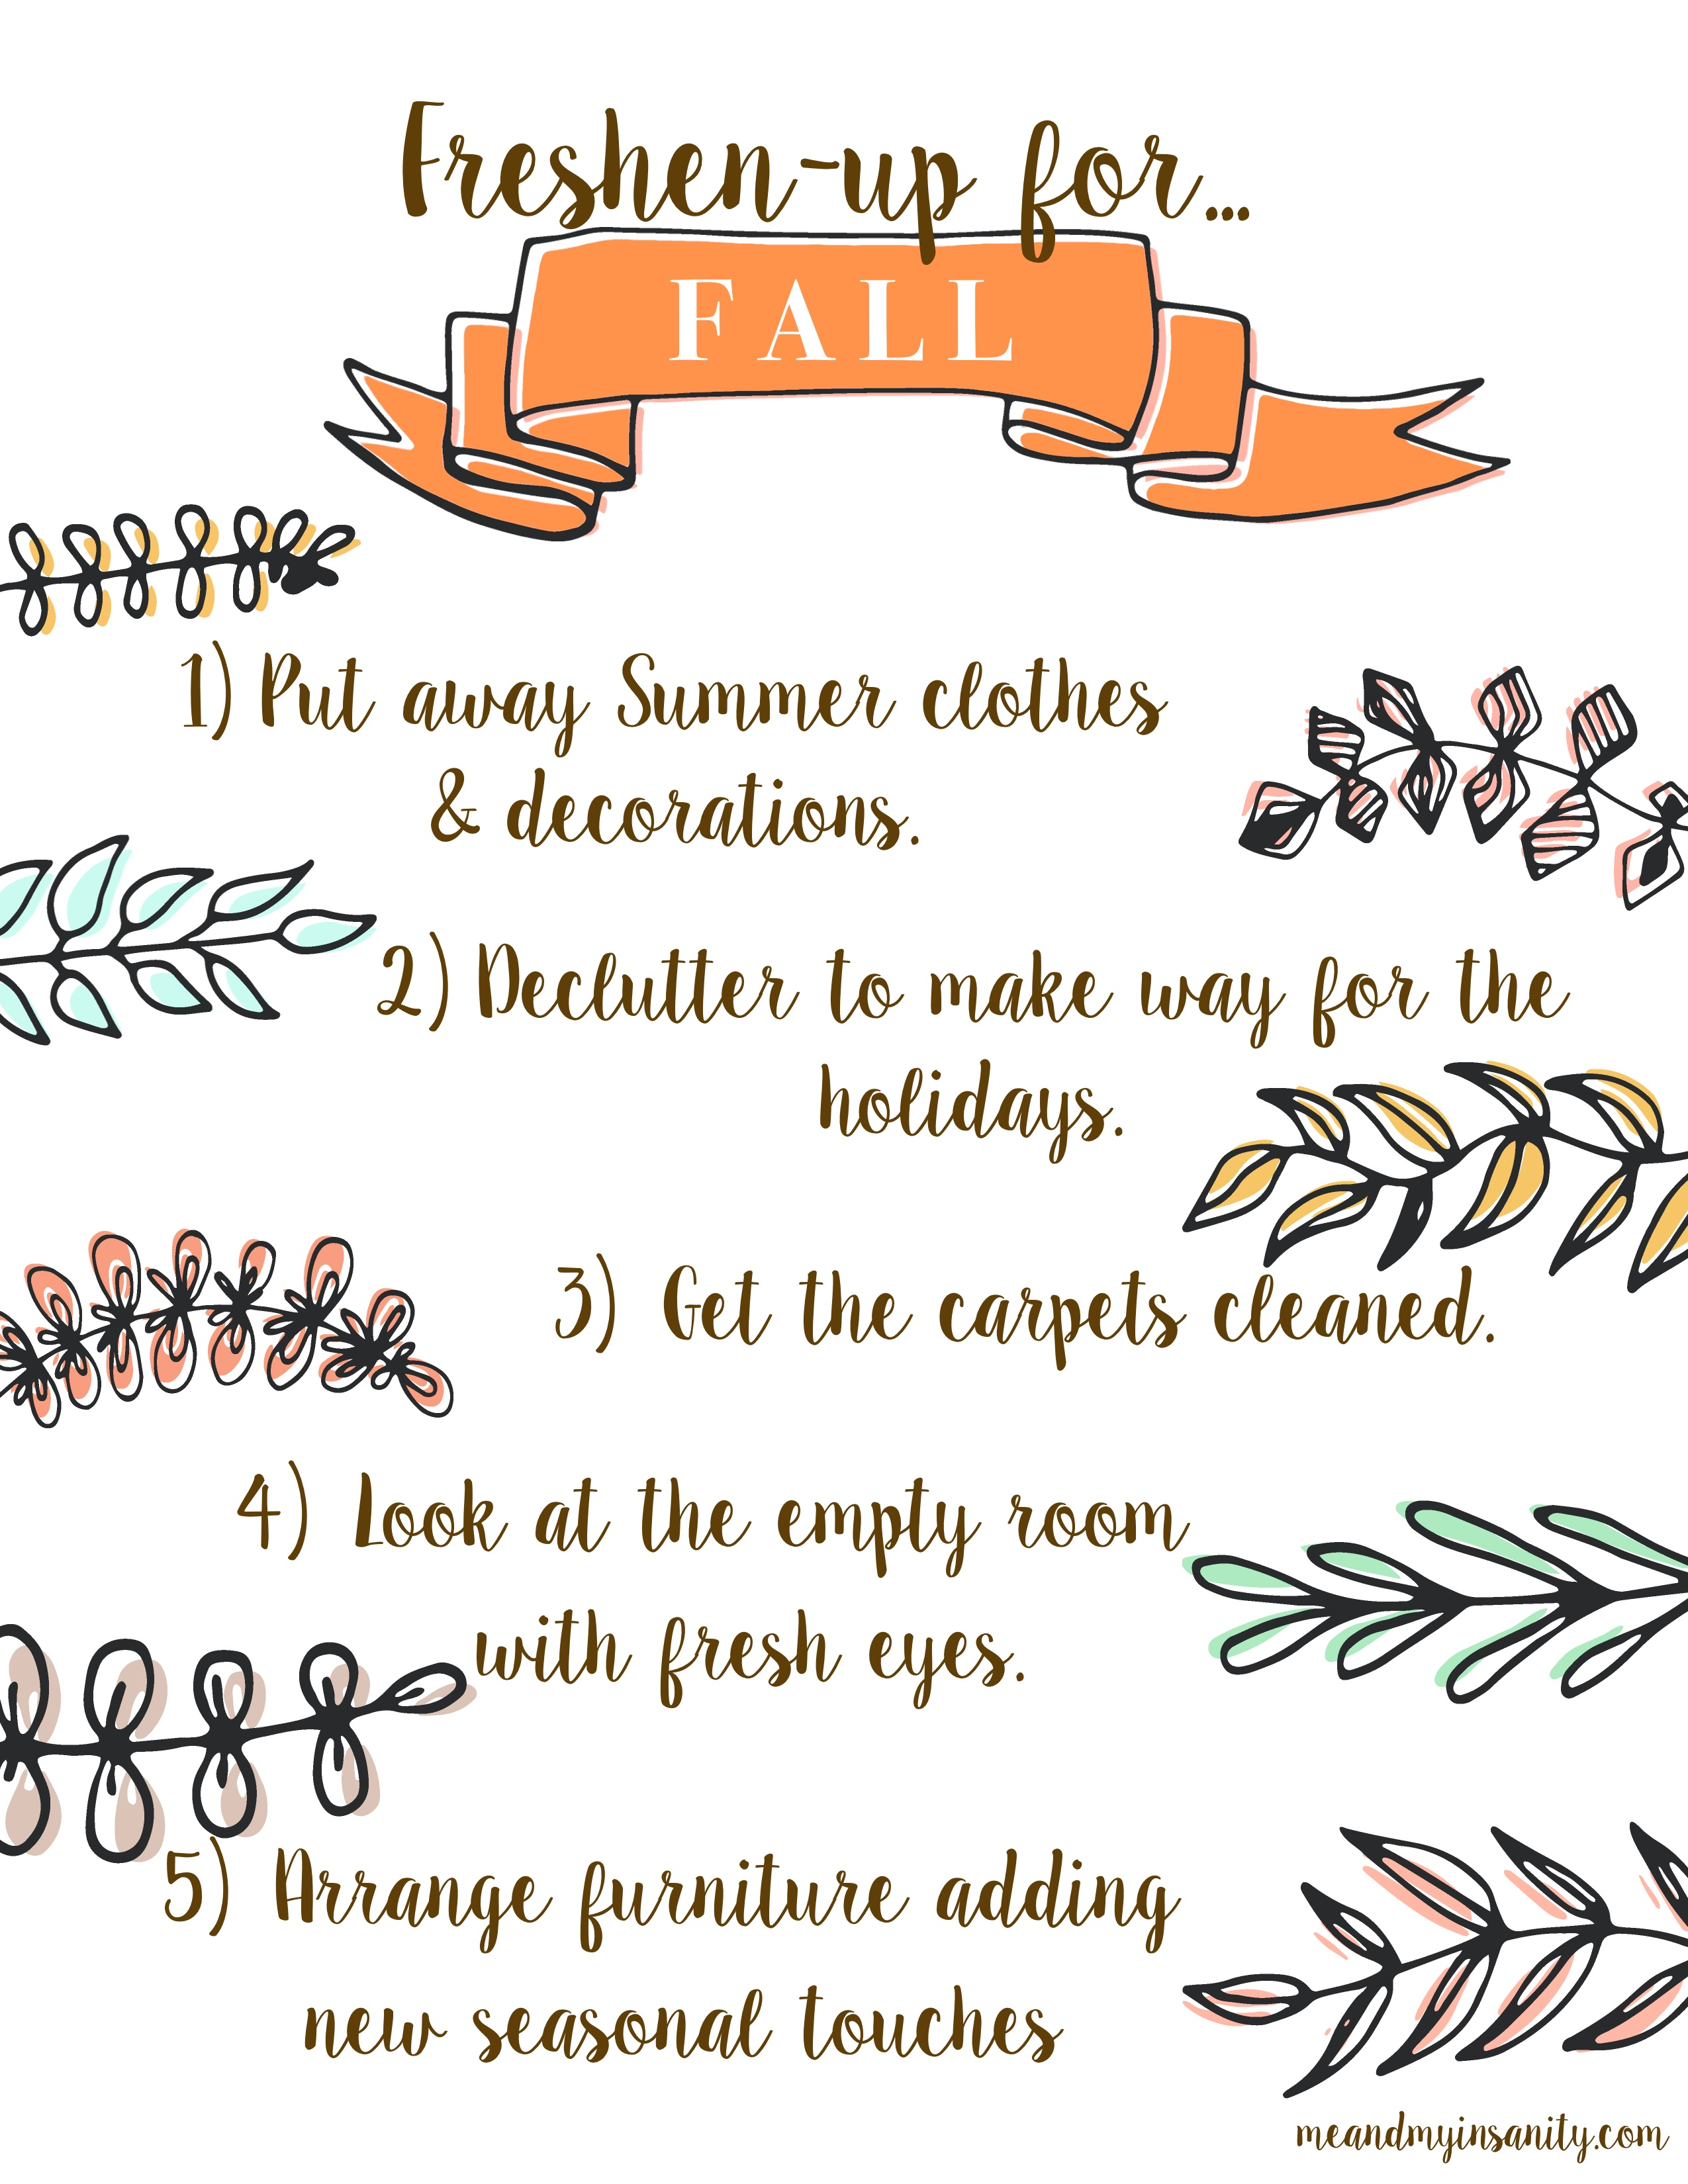 Freshen Up for Fall Tips